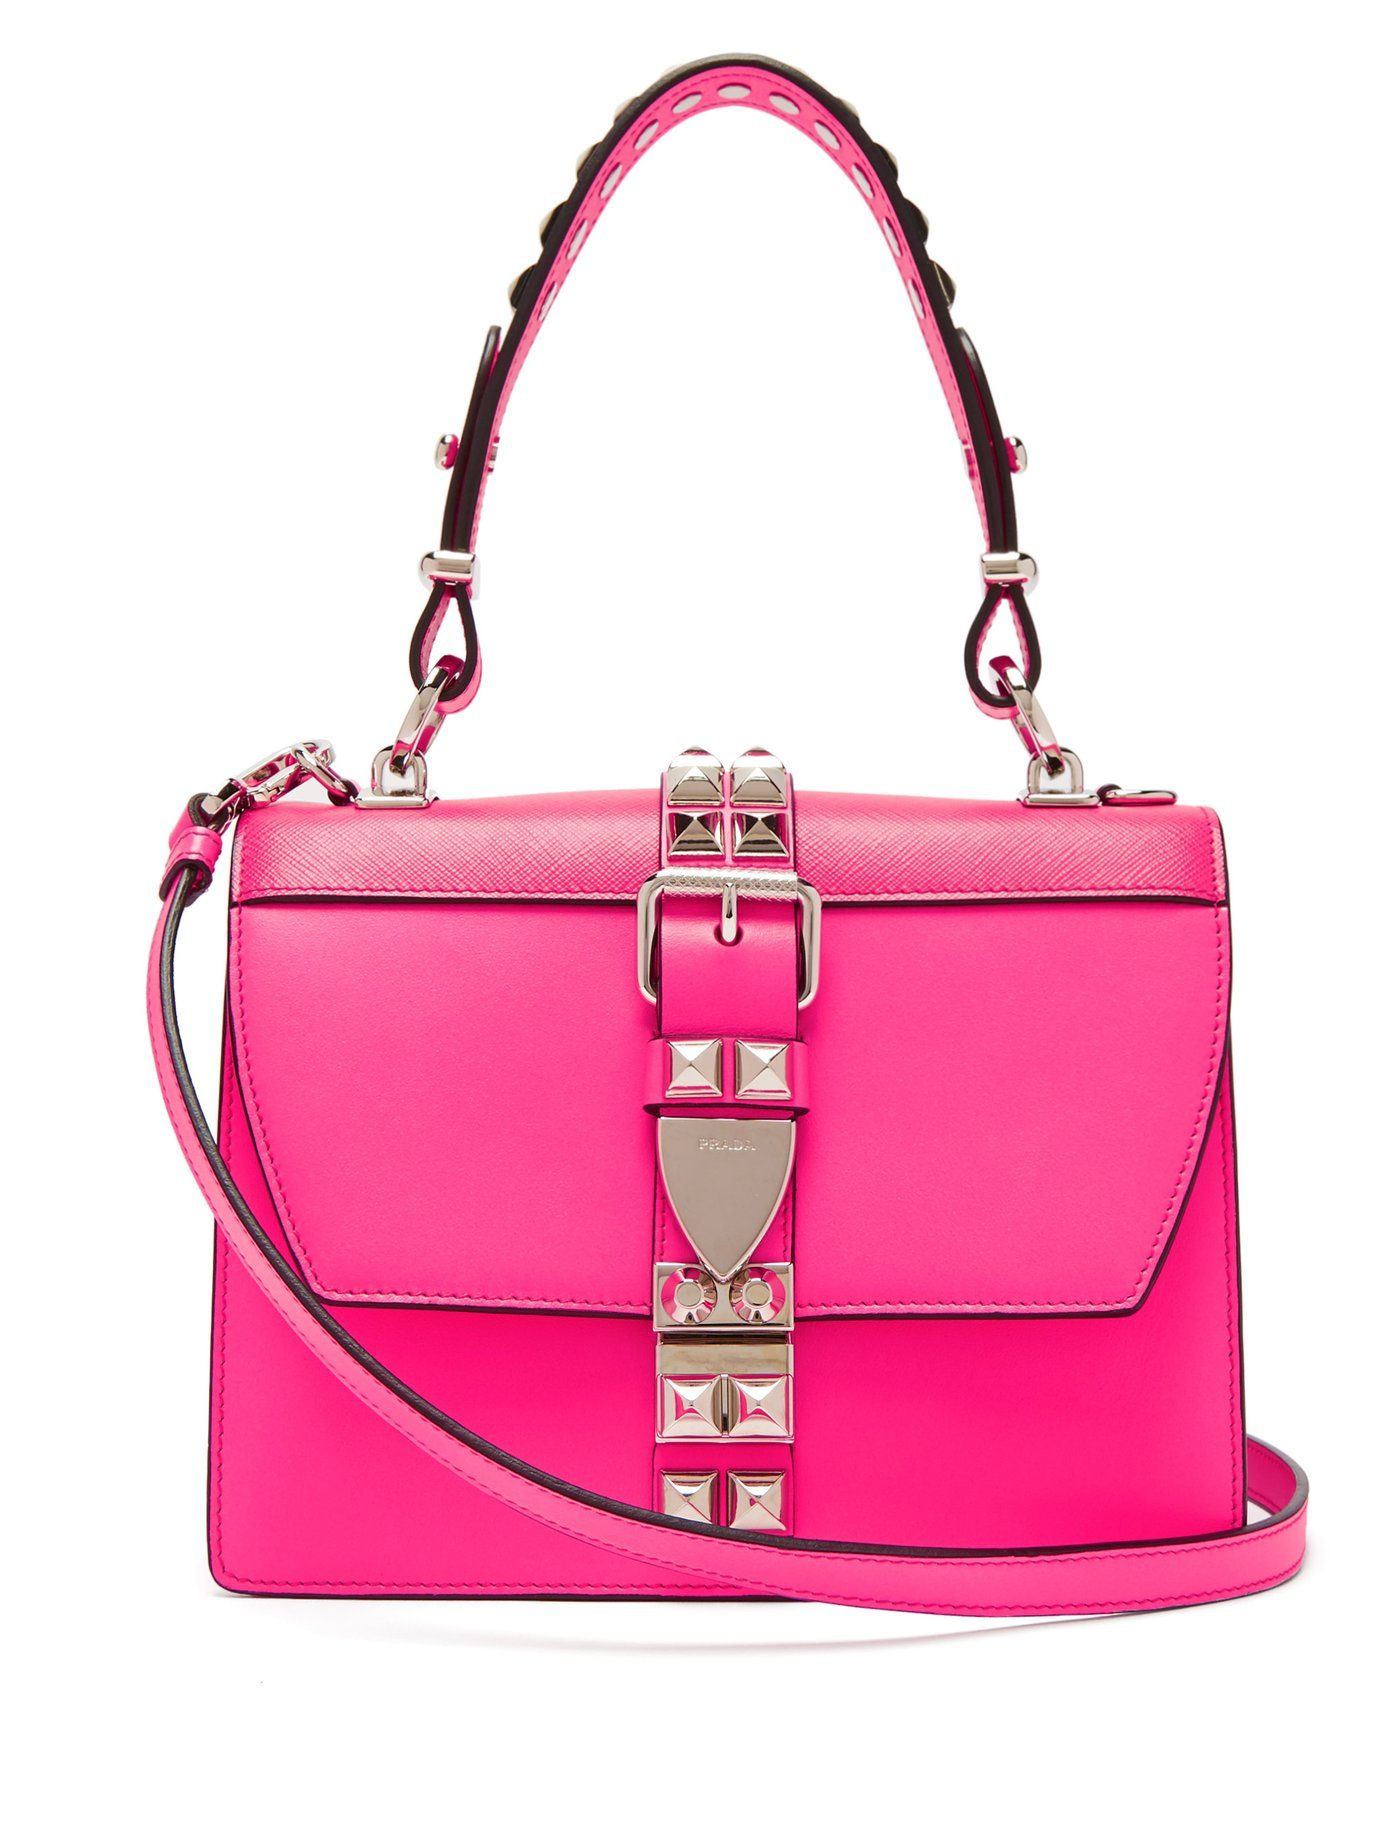 47a04d2ae067 PRADA Elektra studded leather shoulder bag £1,658 Prada Bag, Prada Handbags,  Bag Sale